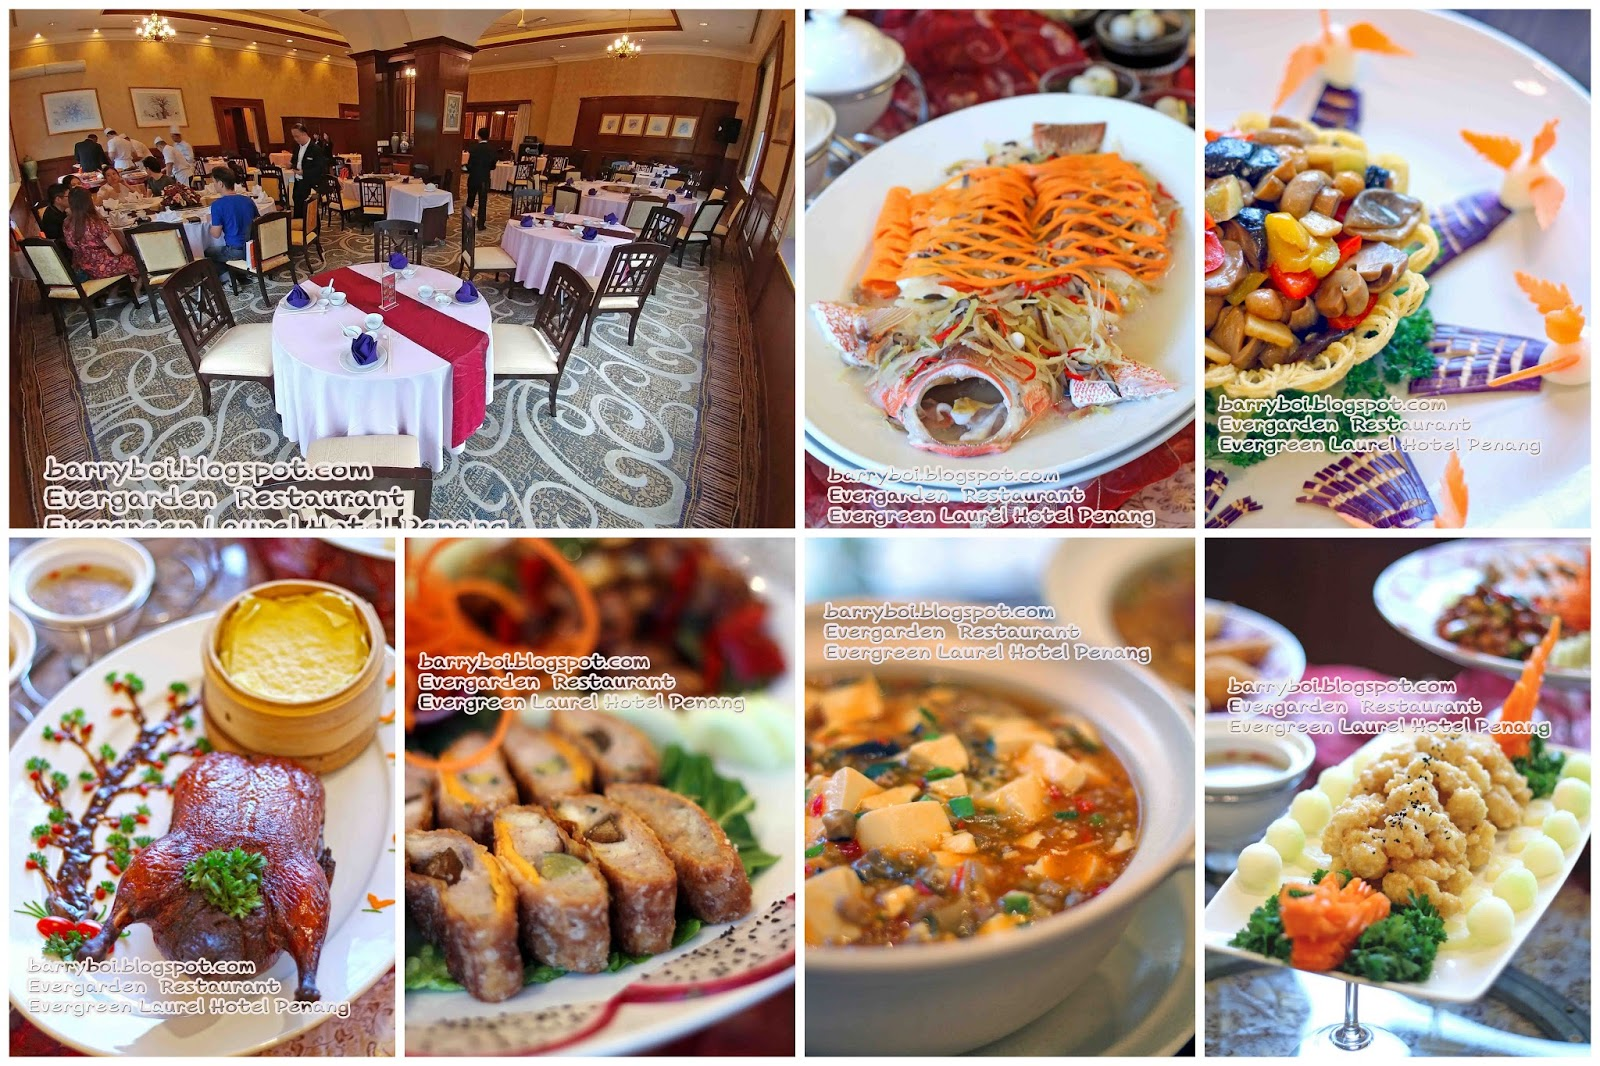 daily momentsbarryboi: chinese & sze chuan cuisine promotion